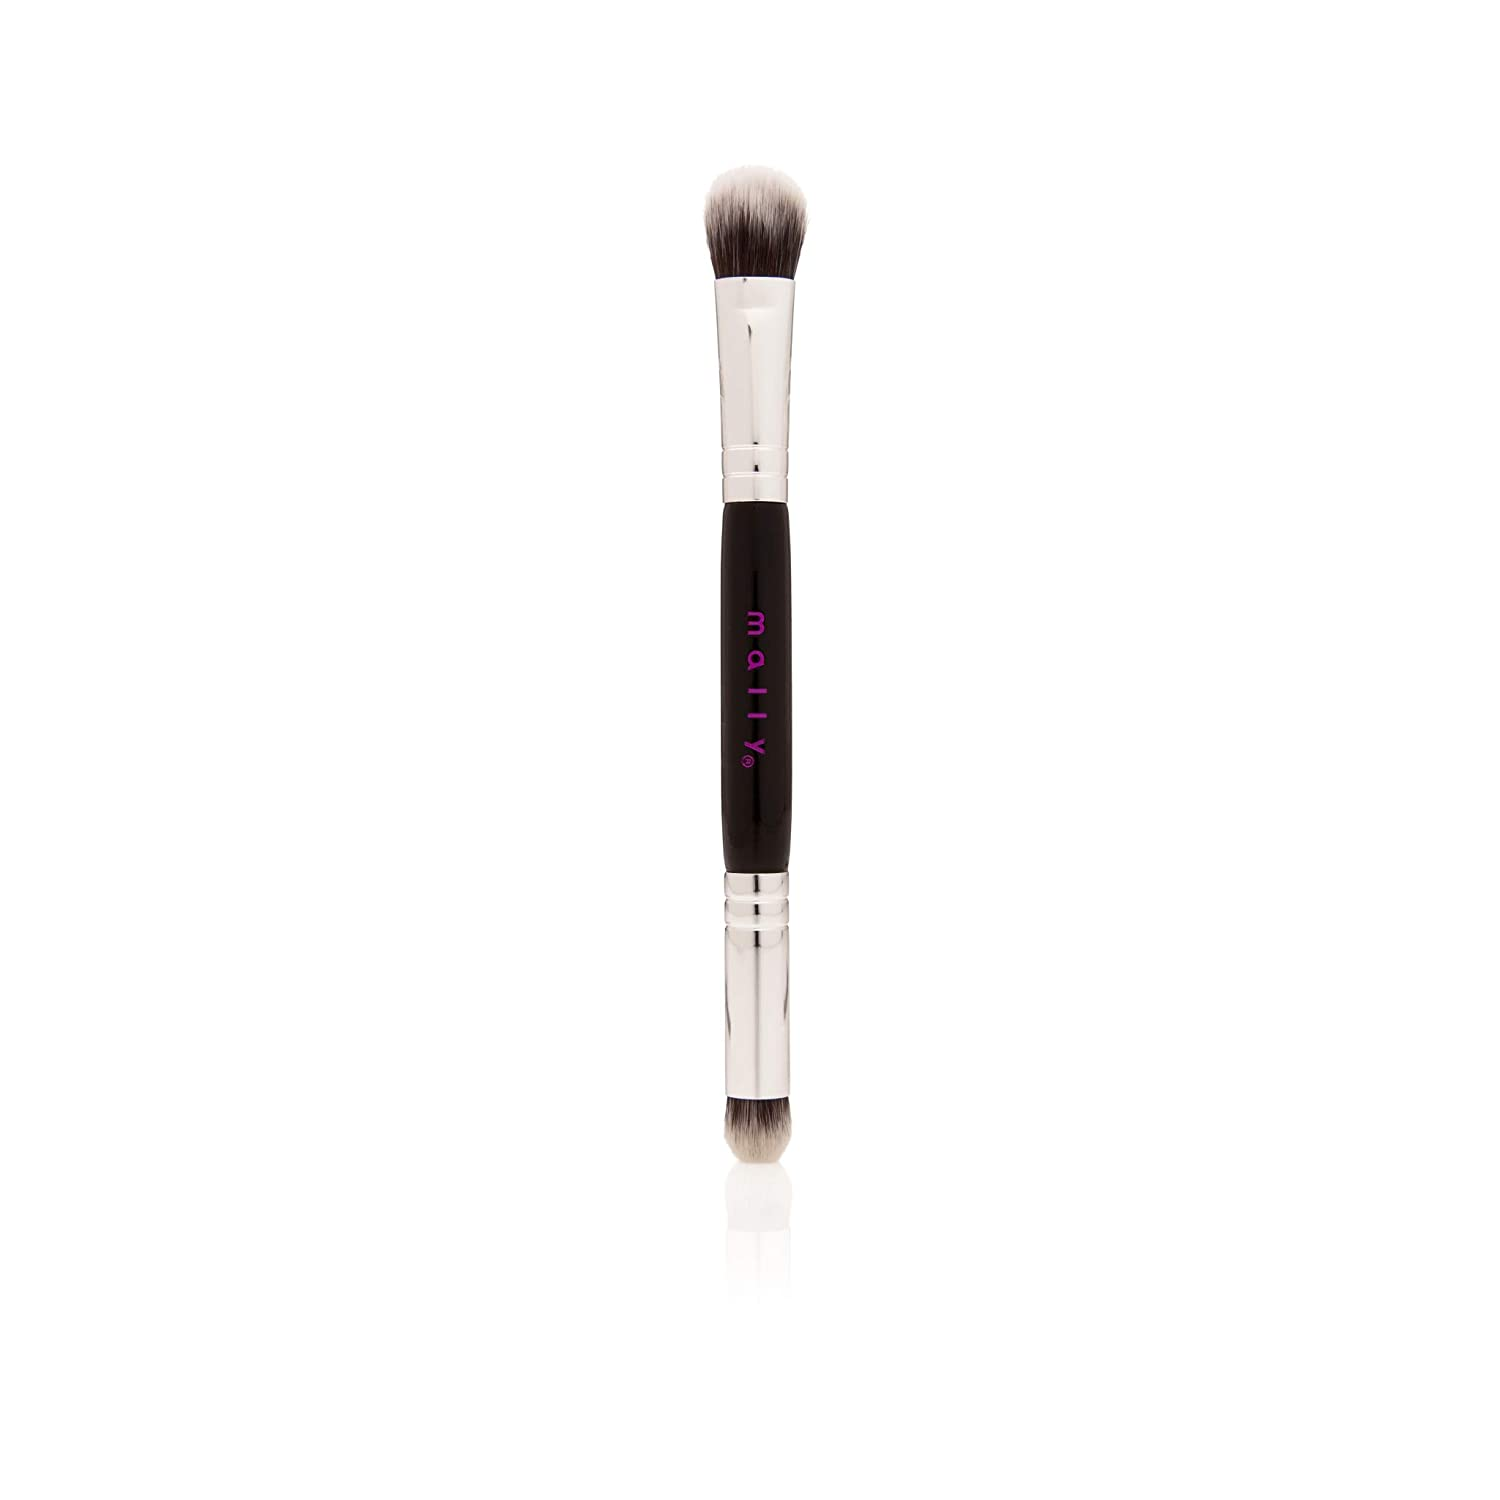 Mally Beauty Double-ended Eyeshadow Brush